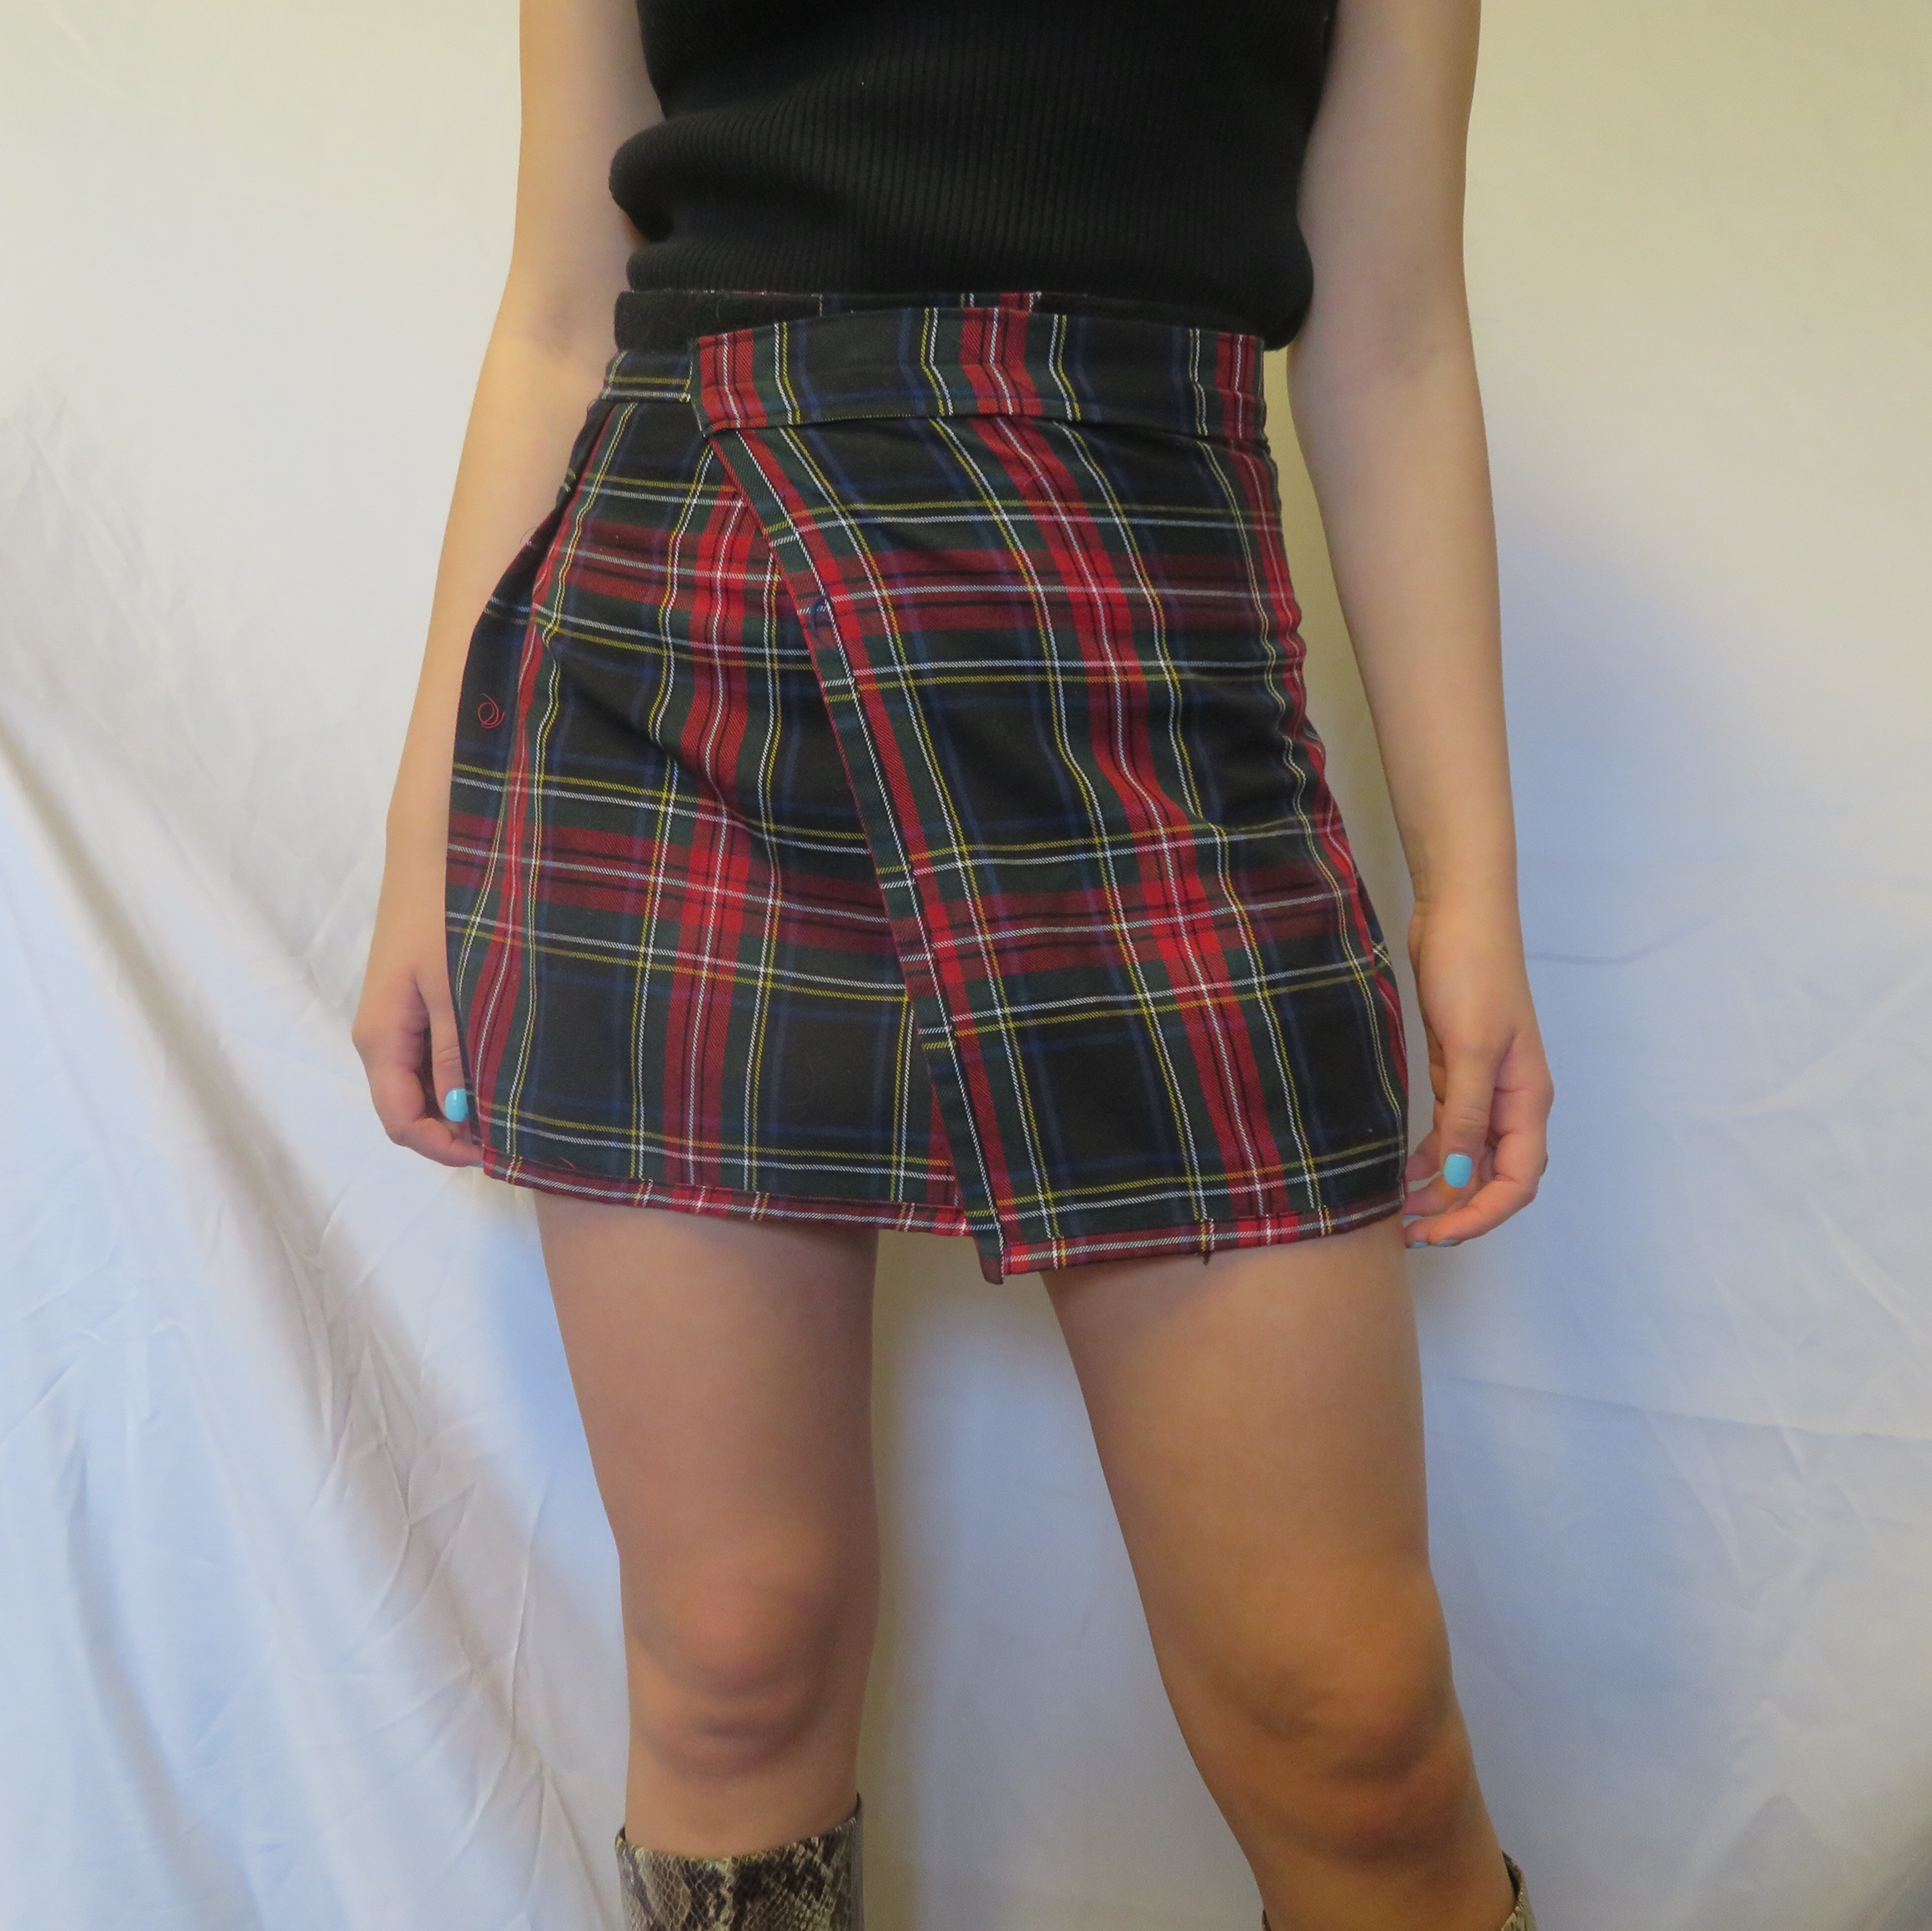 36d5f2aff Trendy 90s schoolgirl plaid pleated skirt. This skirt gives - Depop